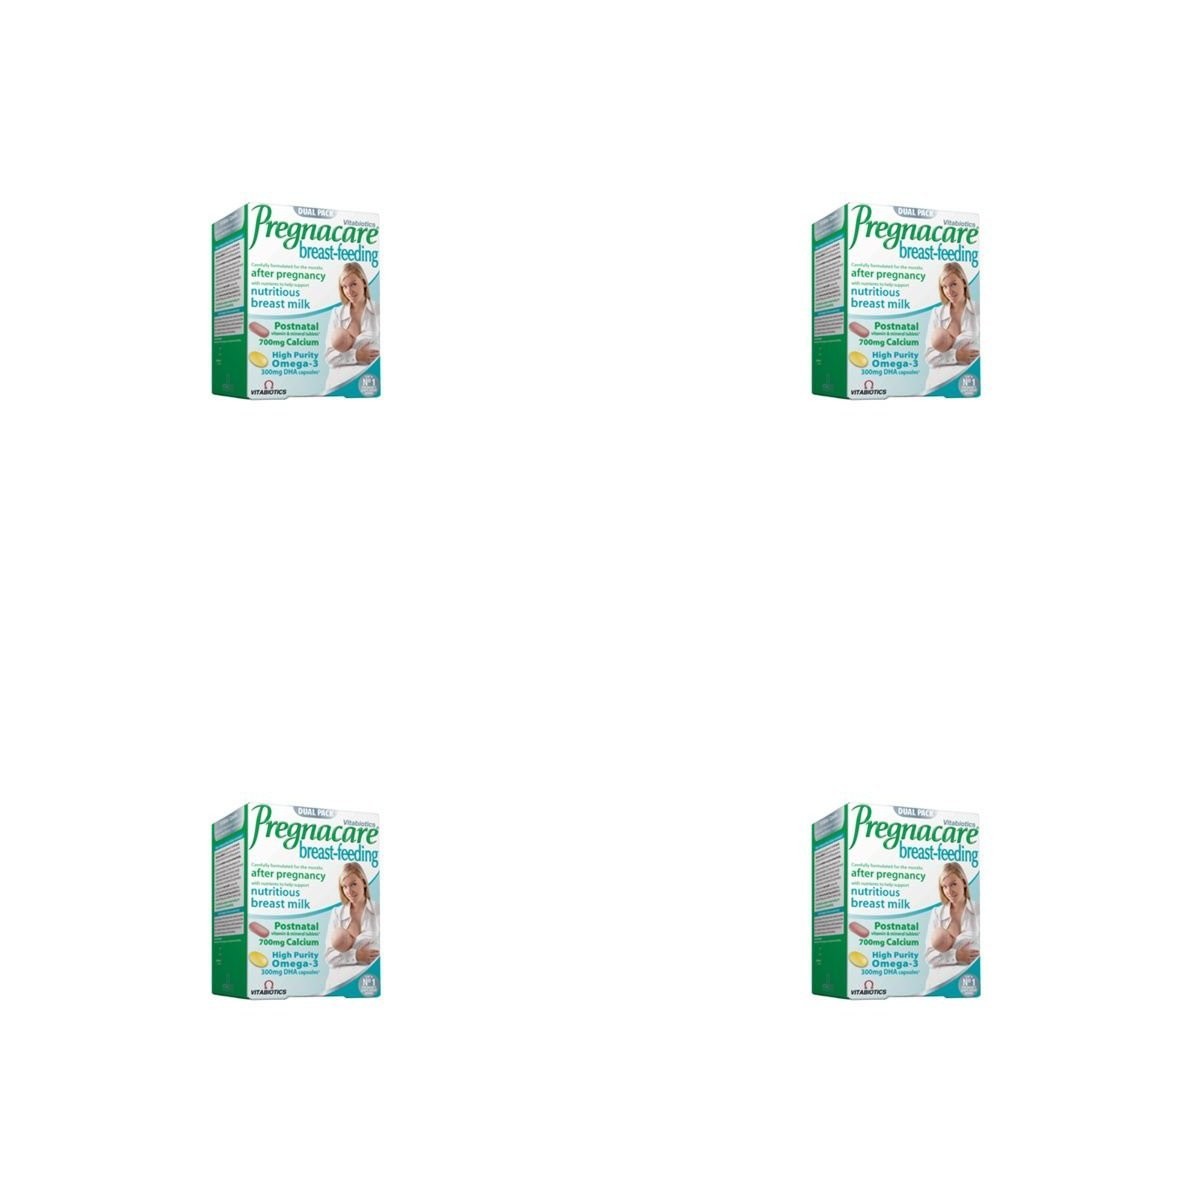 (4 PACK) - Vitabiotics Pregnacare Breastfeeding Tablets/Capsules | 84s | 4 PACK - SUPER SAVER - SAVE MONEY